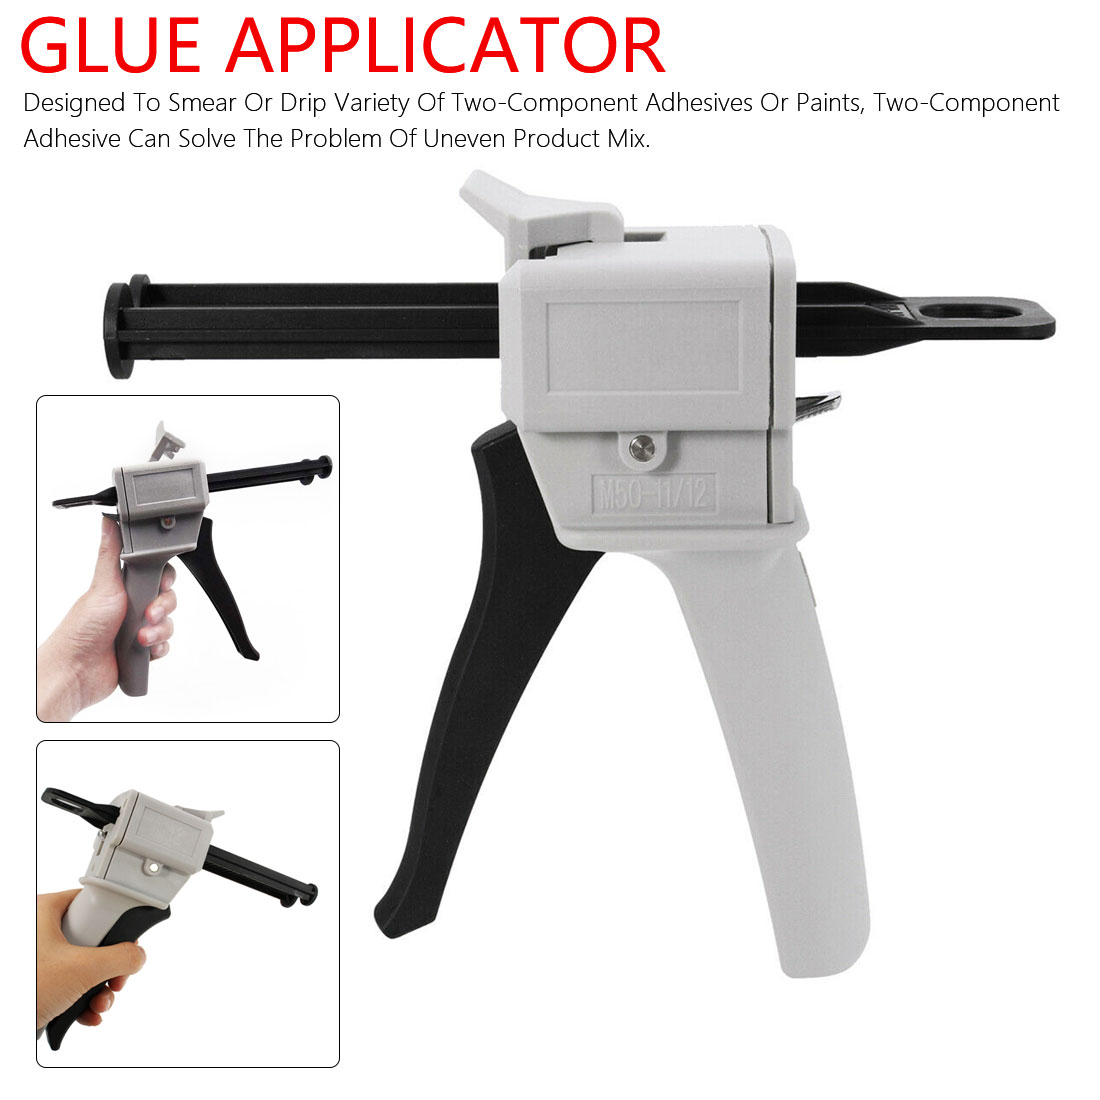 Glue Gun 50ml Two Component AB Epoxy Sealant Glue Gun Applicator Glue Adhensive Squeeze Mixed 1:1 Manual Caulking Gun Dispenser